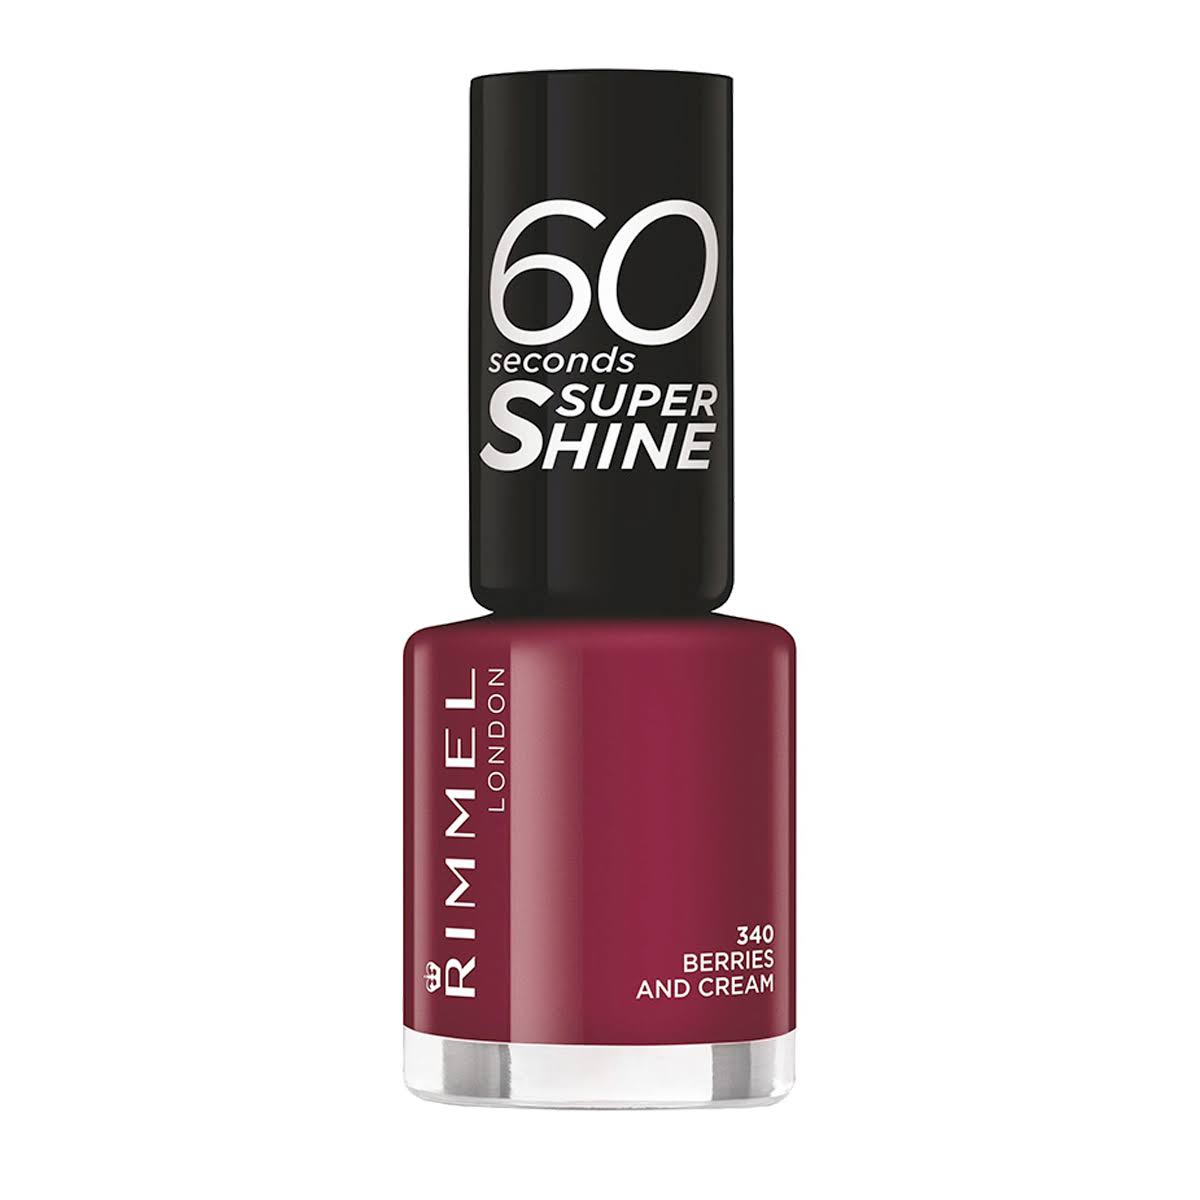 Rimmel 60 Seconds Super Shine Nail Polish - 340 Berries and Cream